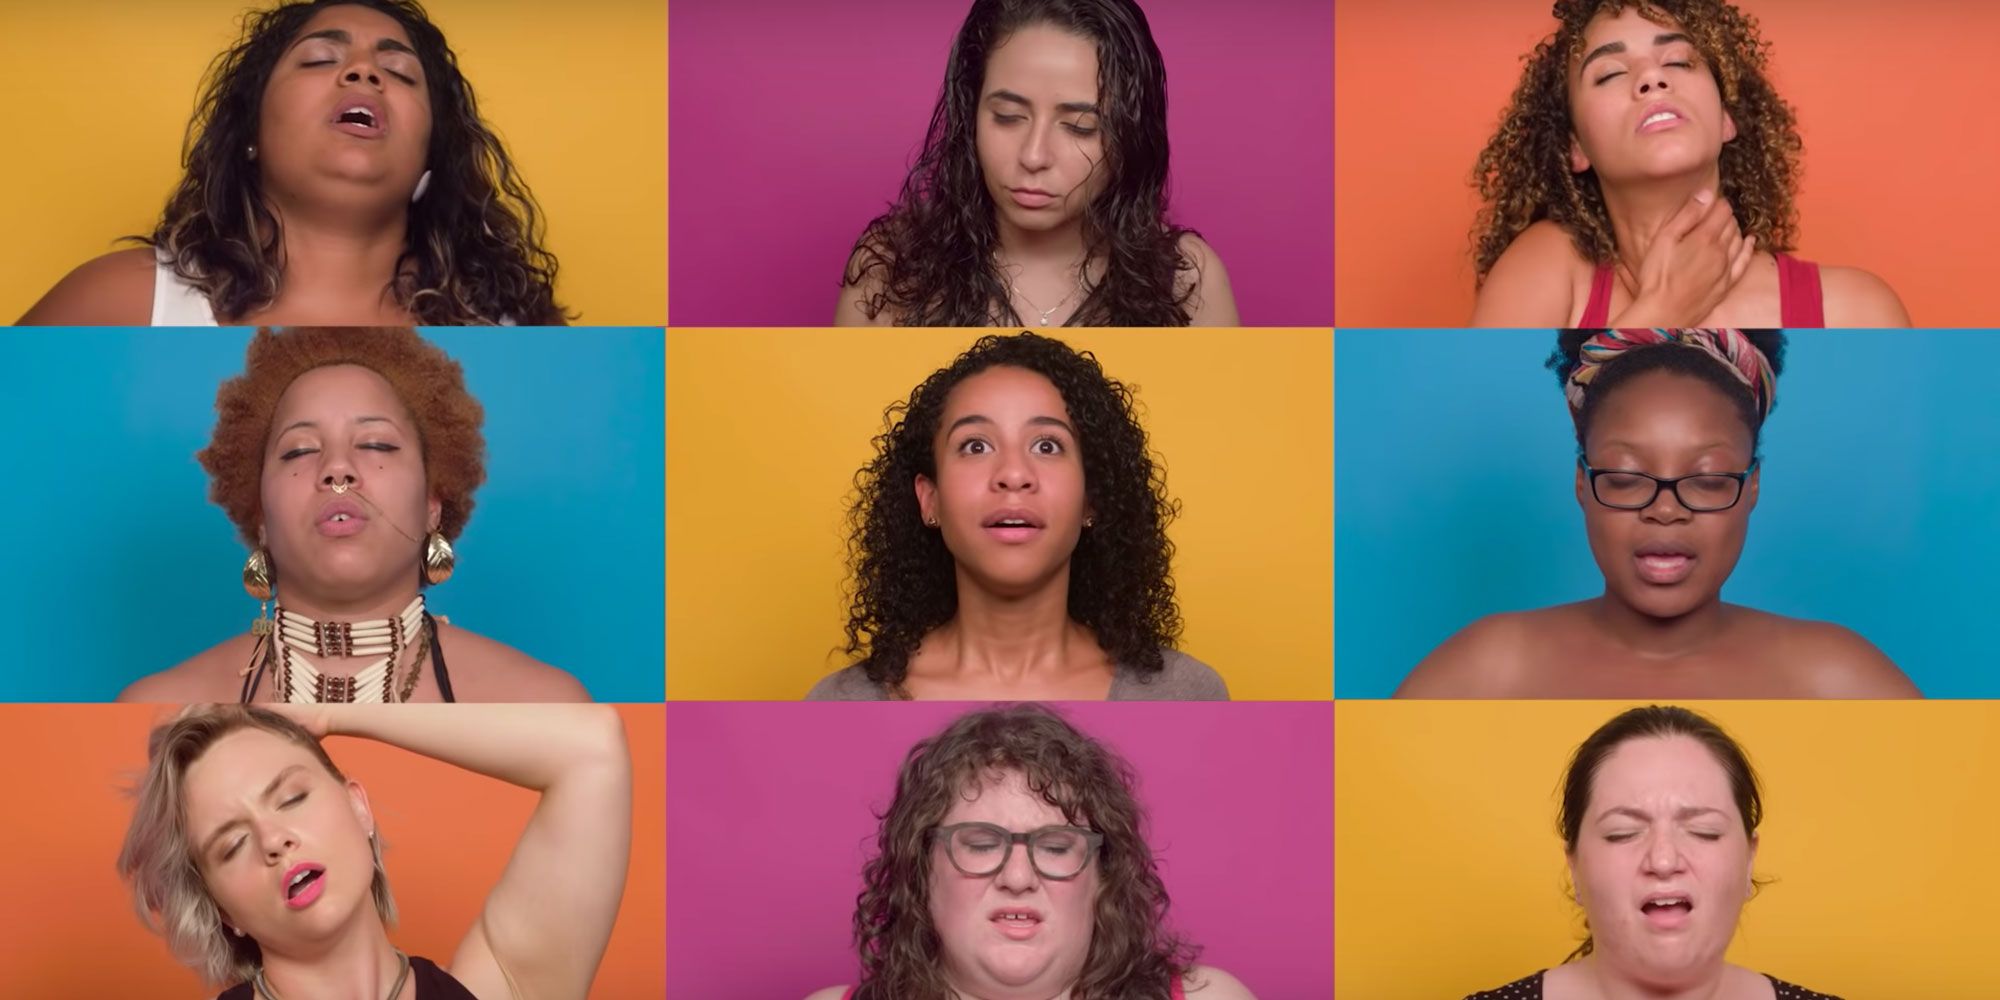 a grid of the ecstatic faces of nine women engaged in self-pleasure